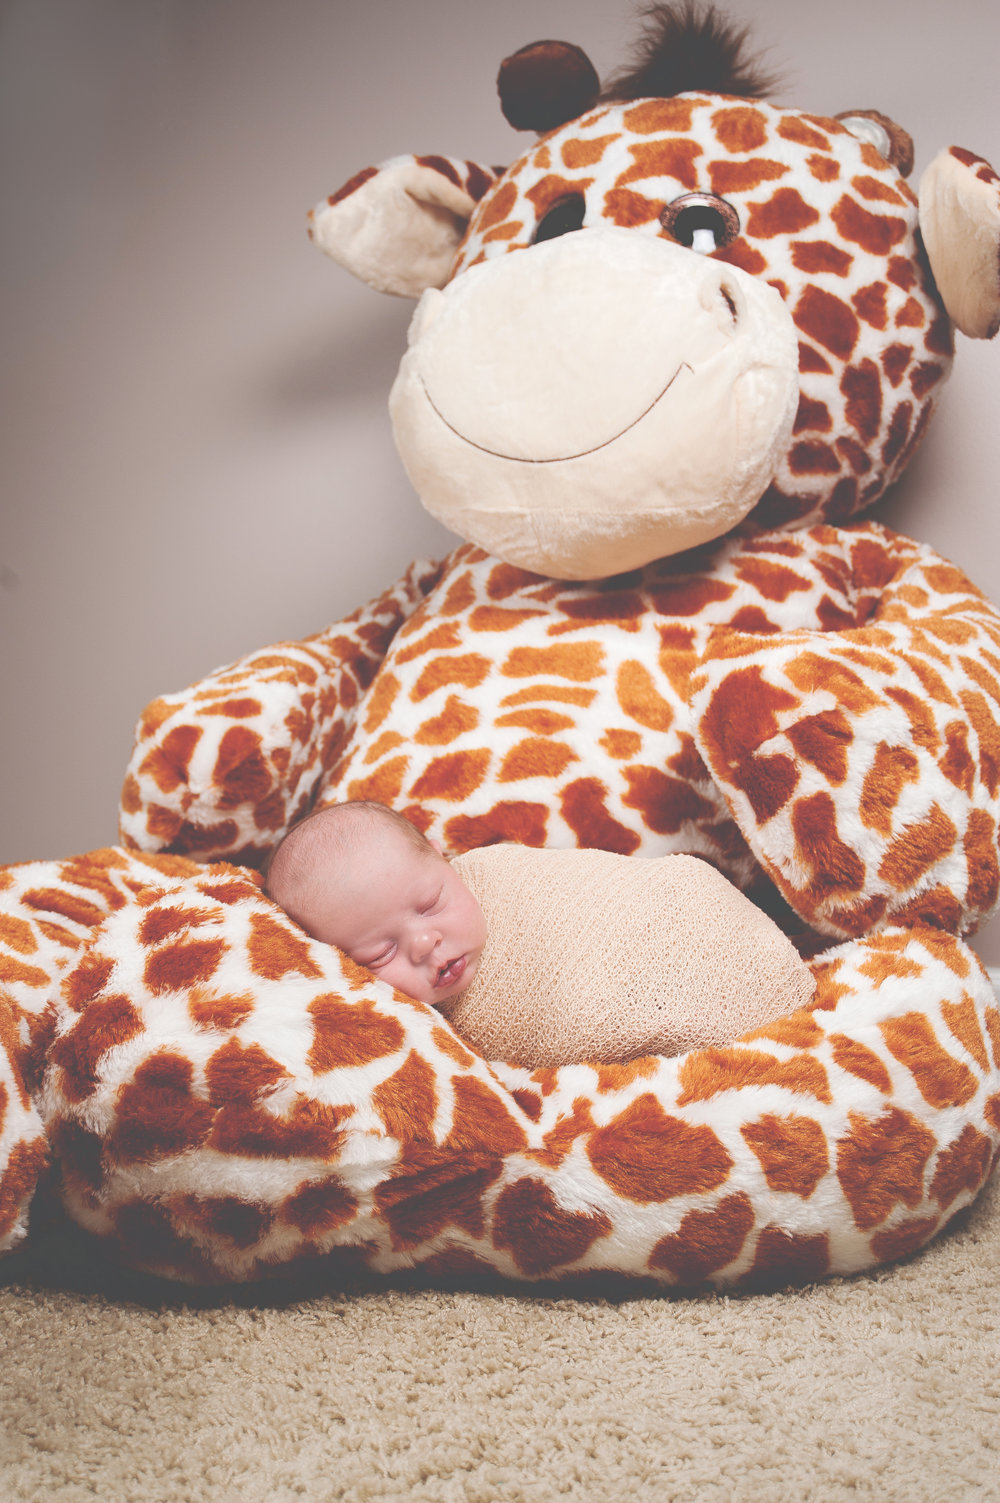 That has got to be THE biggest stuffed giraffe I've ever seen!